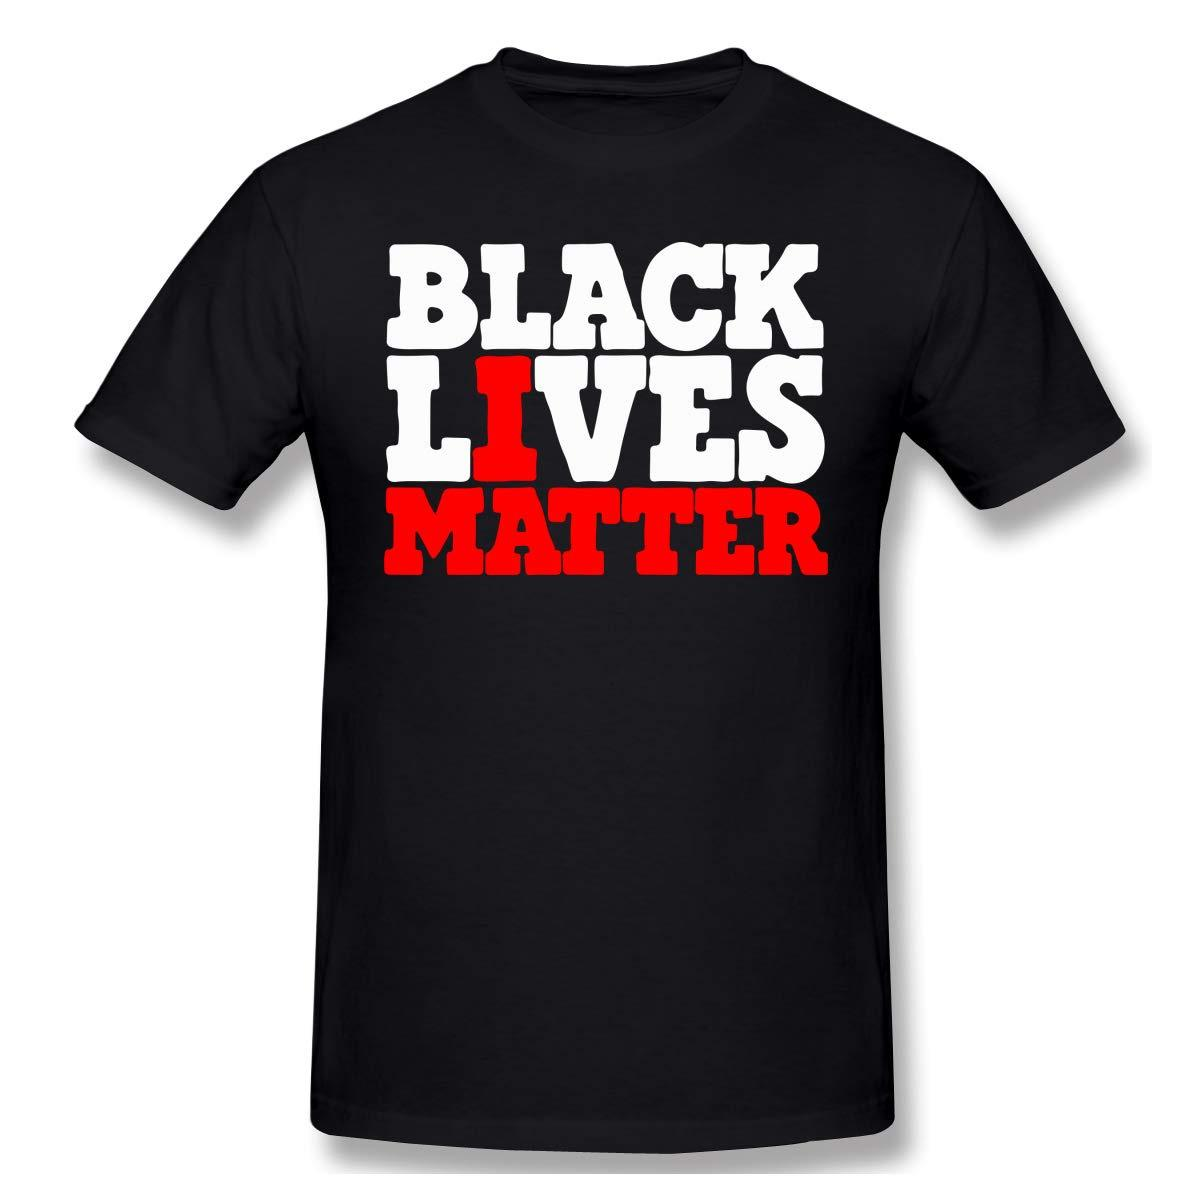 I Can' t Breathe Black Lives Trump 2020 T Shirt Make Liberals Cry Again Short Sleeve Shirts America General Election Party Favor